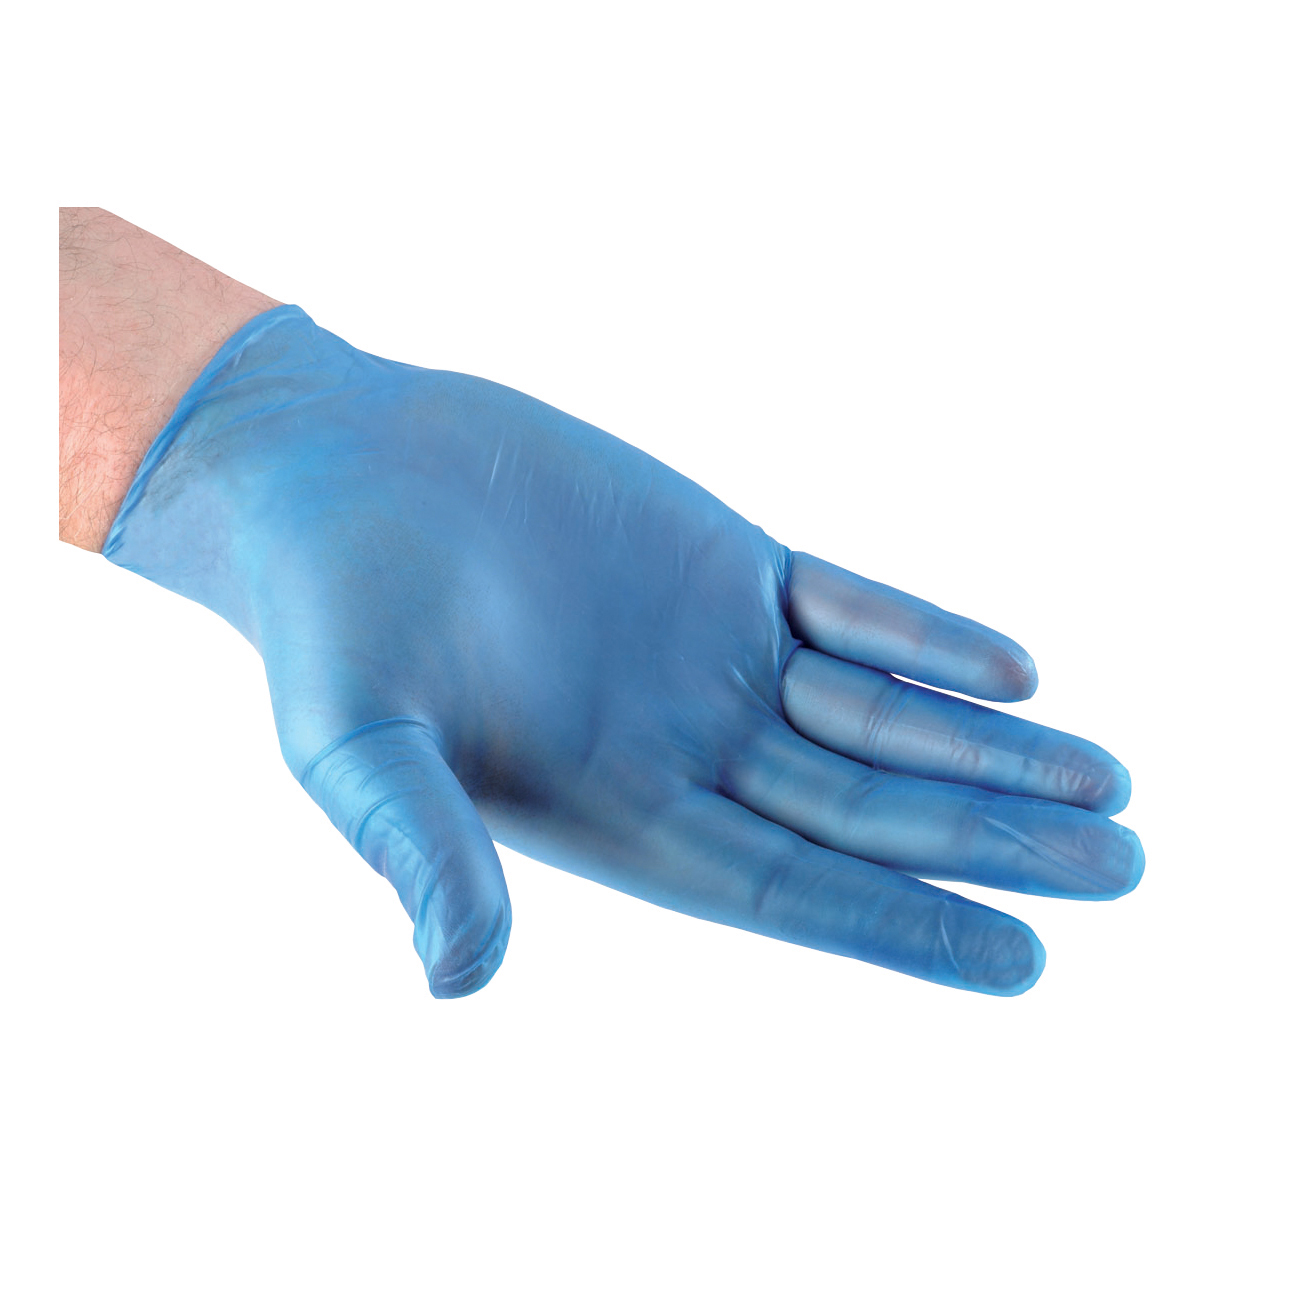 Disposable Gloves Vinyl Powder Free Medium Blue Pack 100